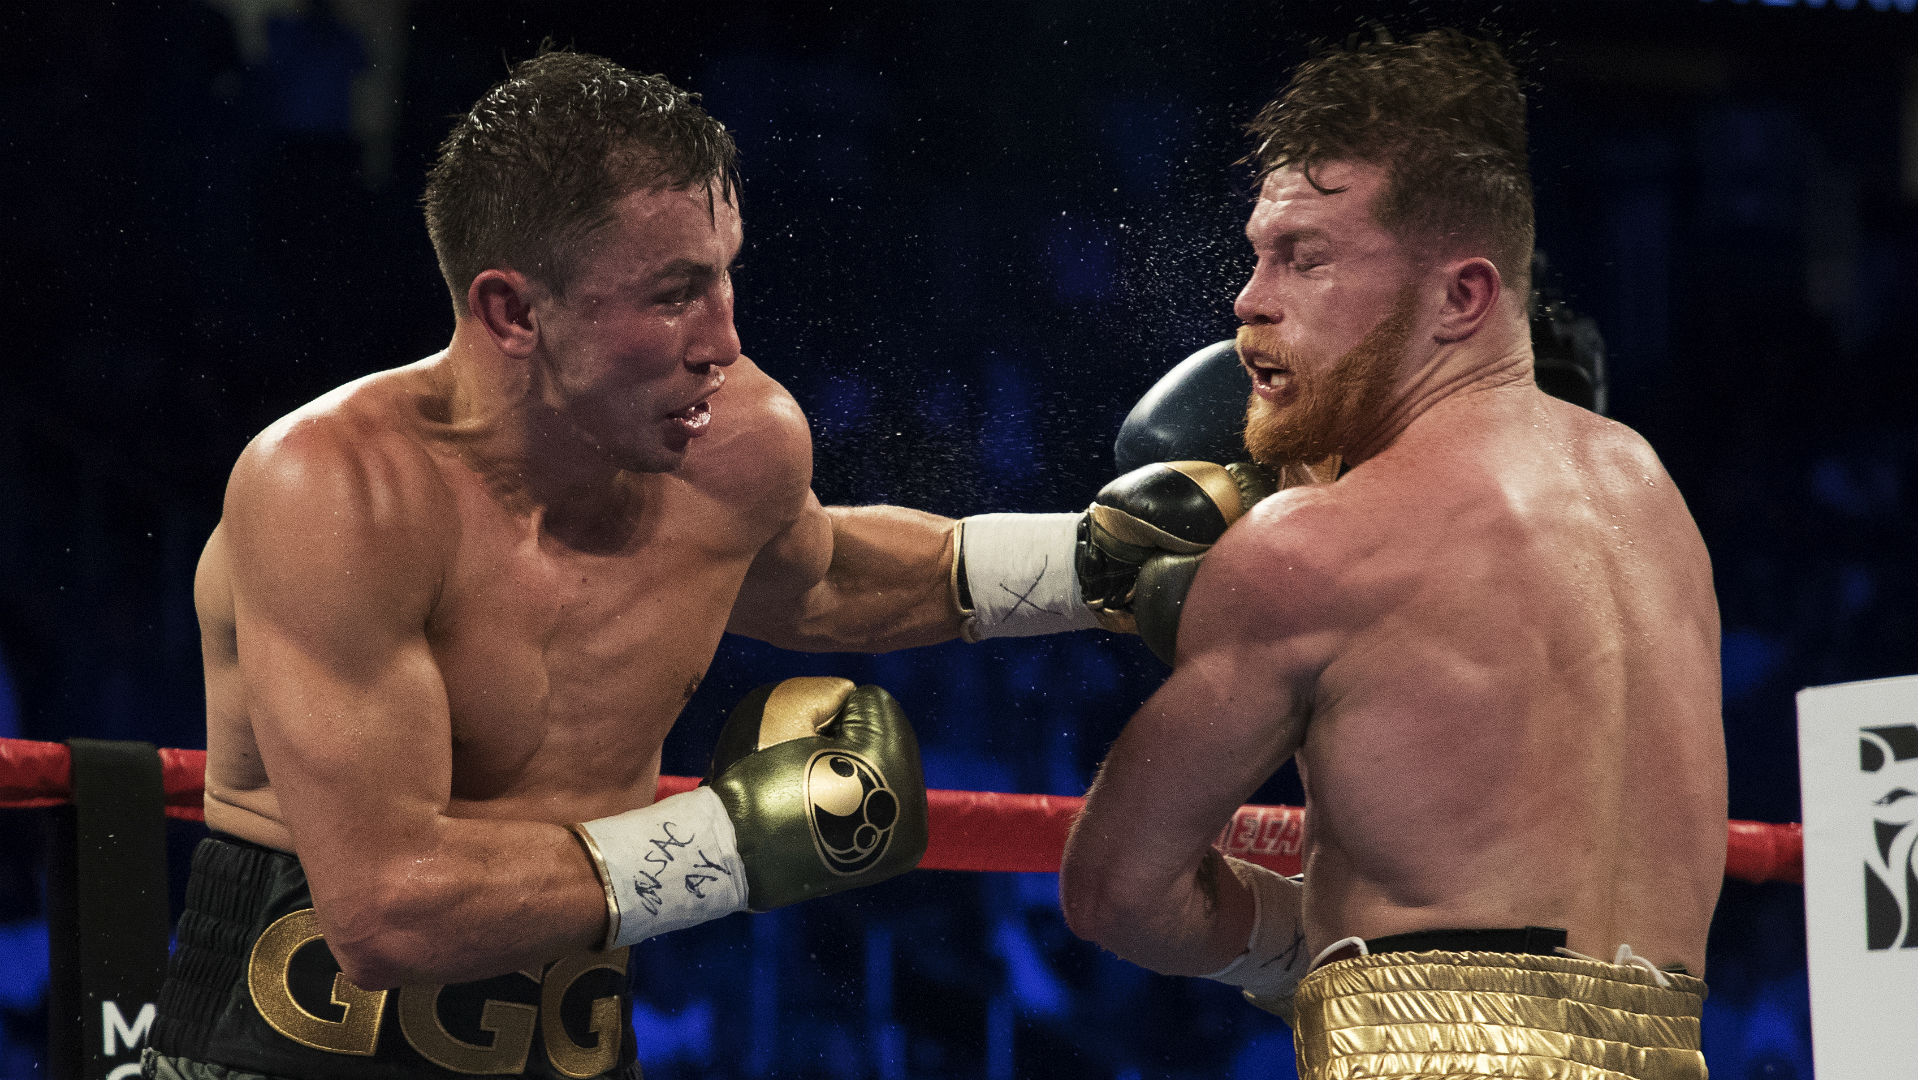 Alvarez crowned new middleweight champion in rematch with GGG